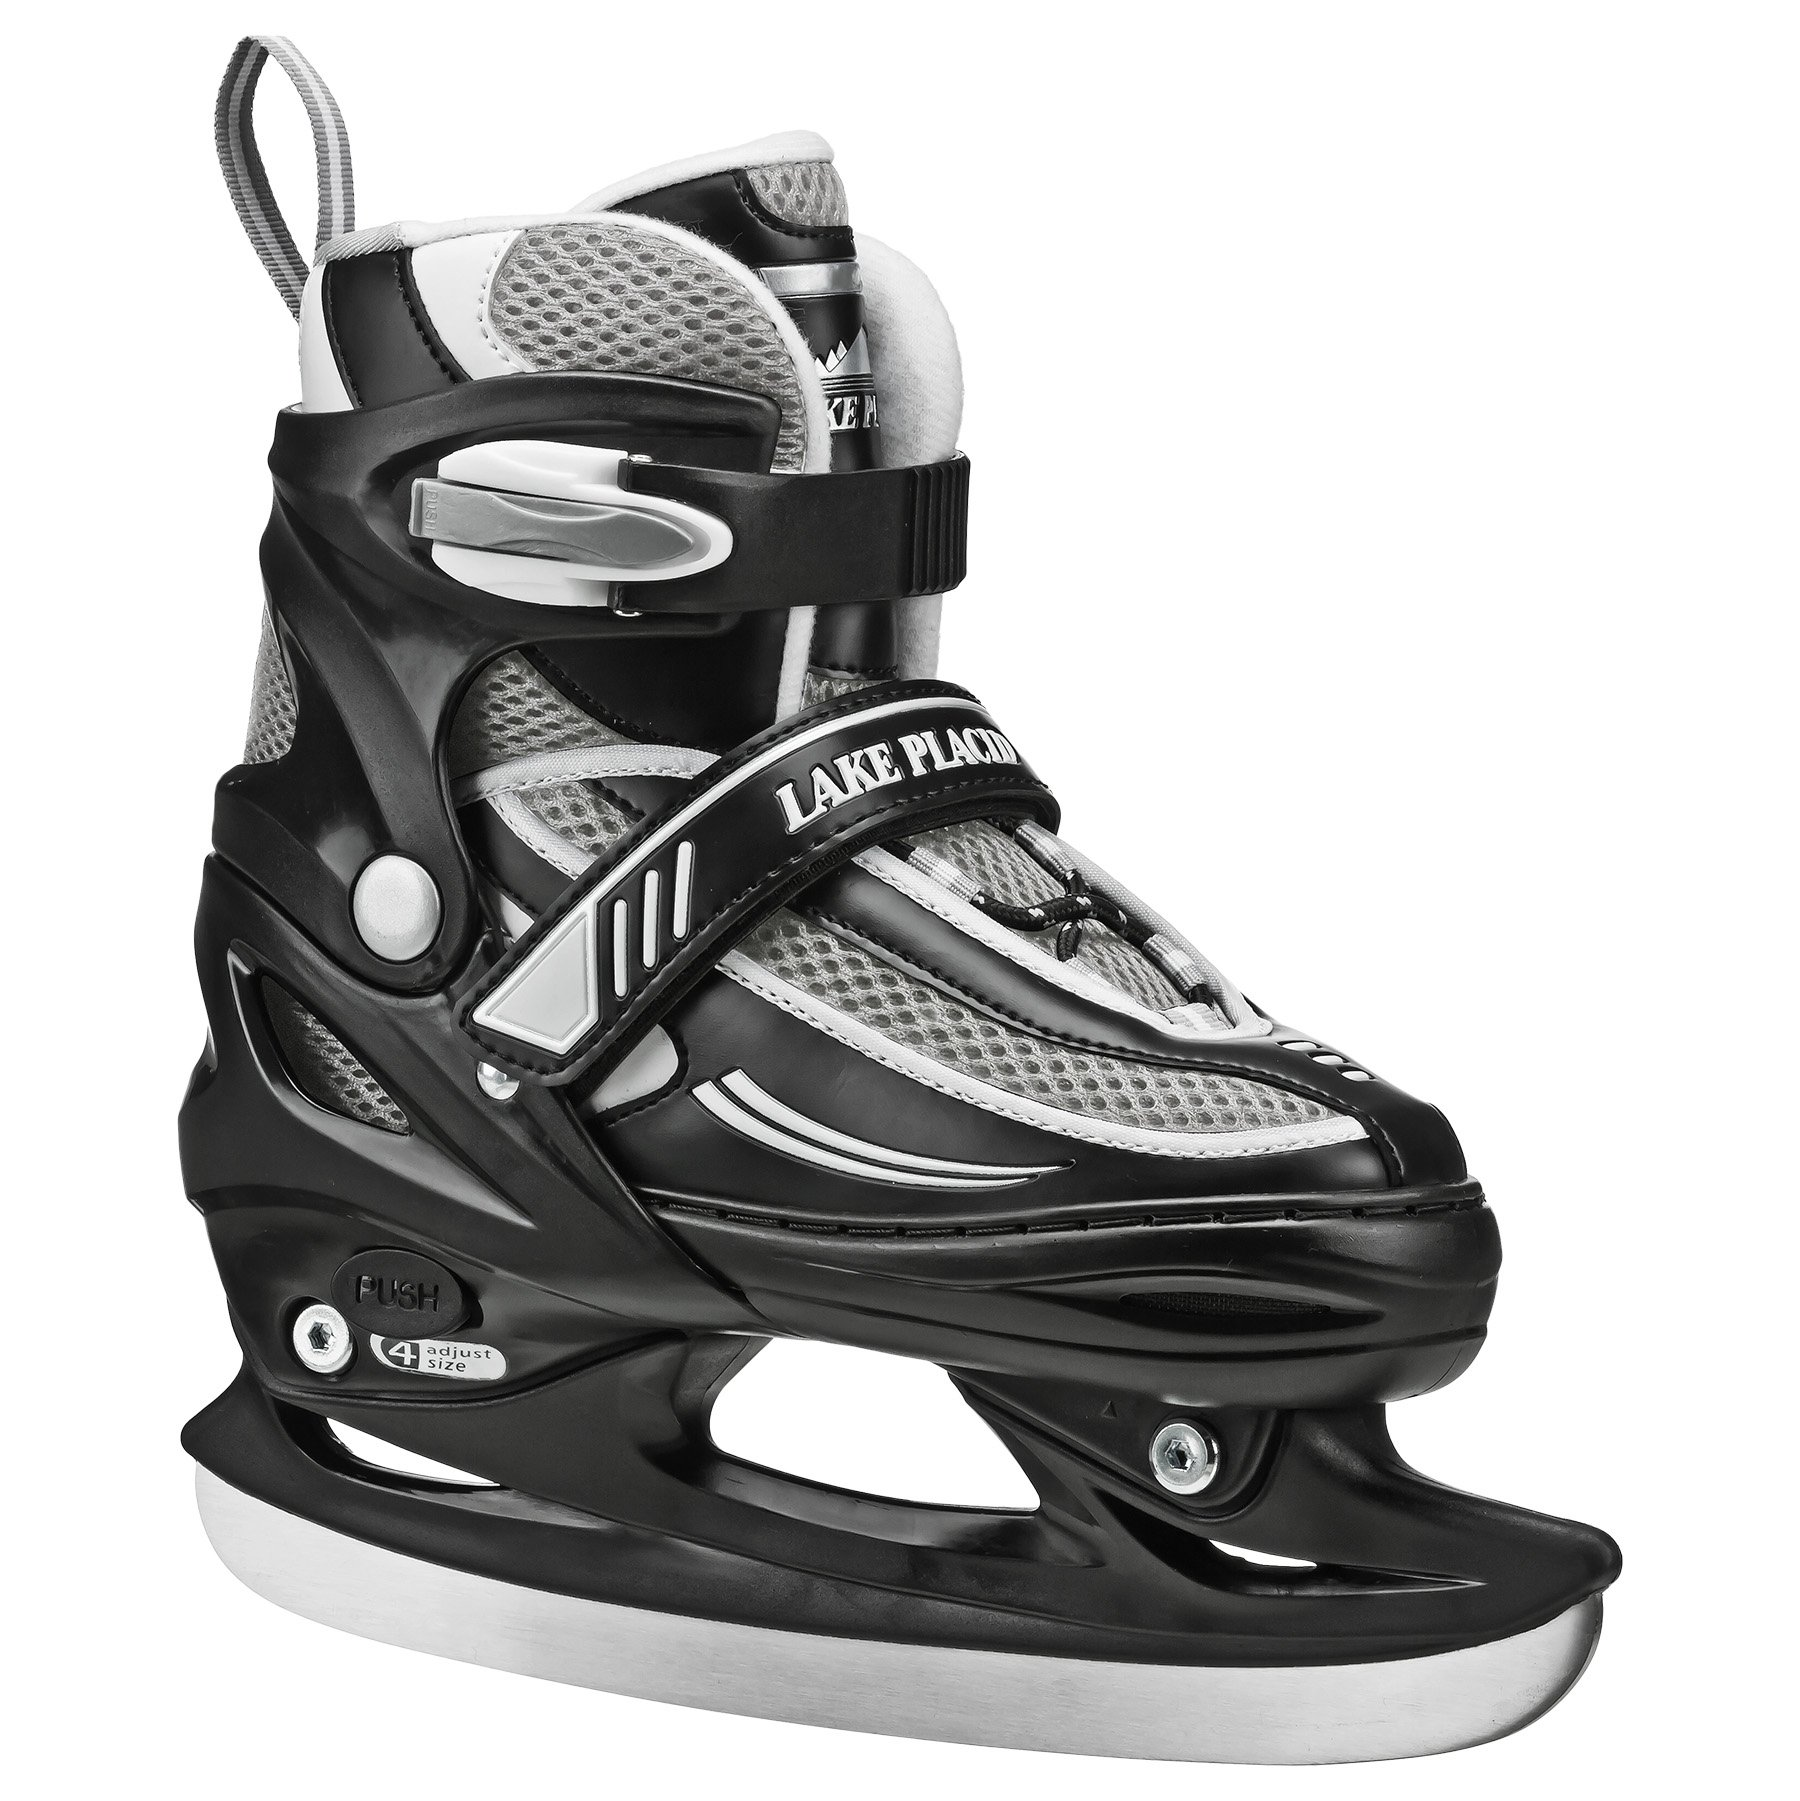 6fac73104ca53 Best Rated in Ice Skating Equipment & Helpful Customer Reviews ...